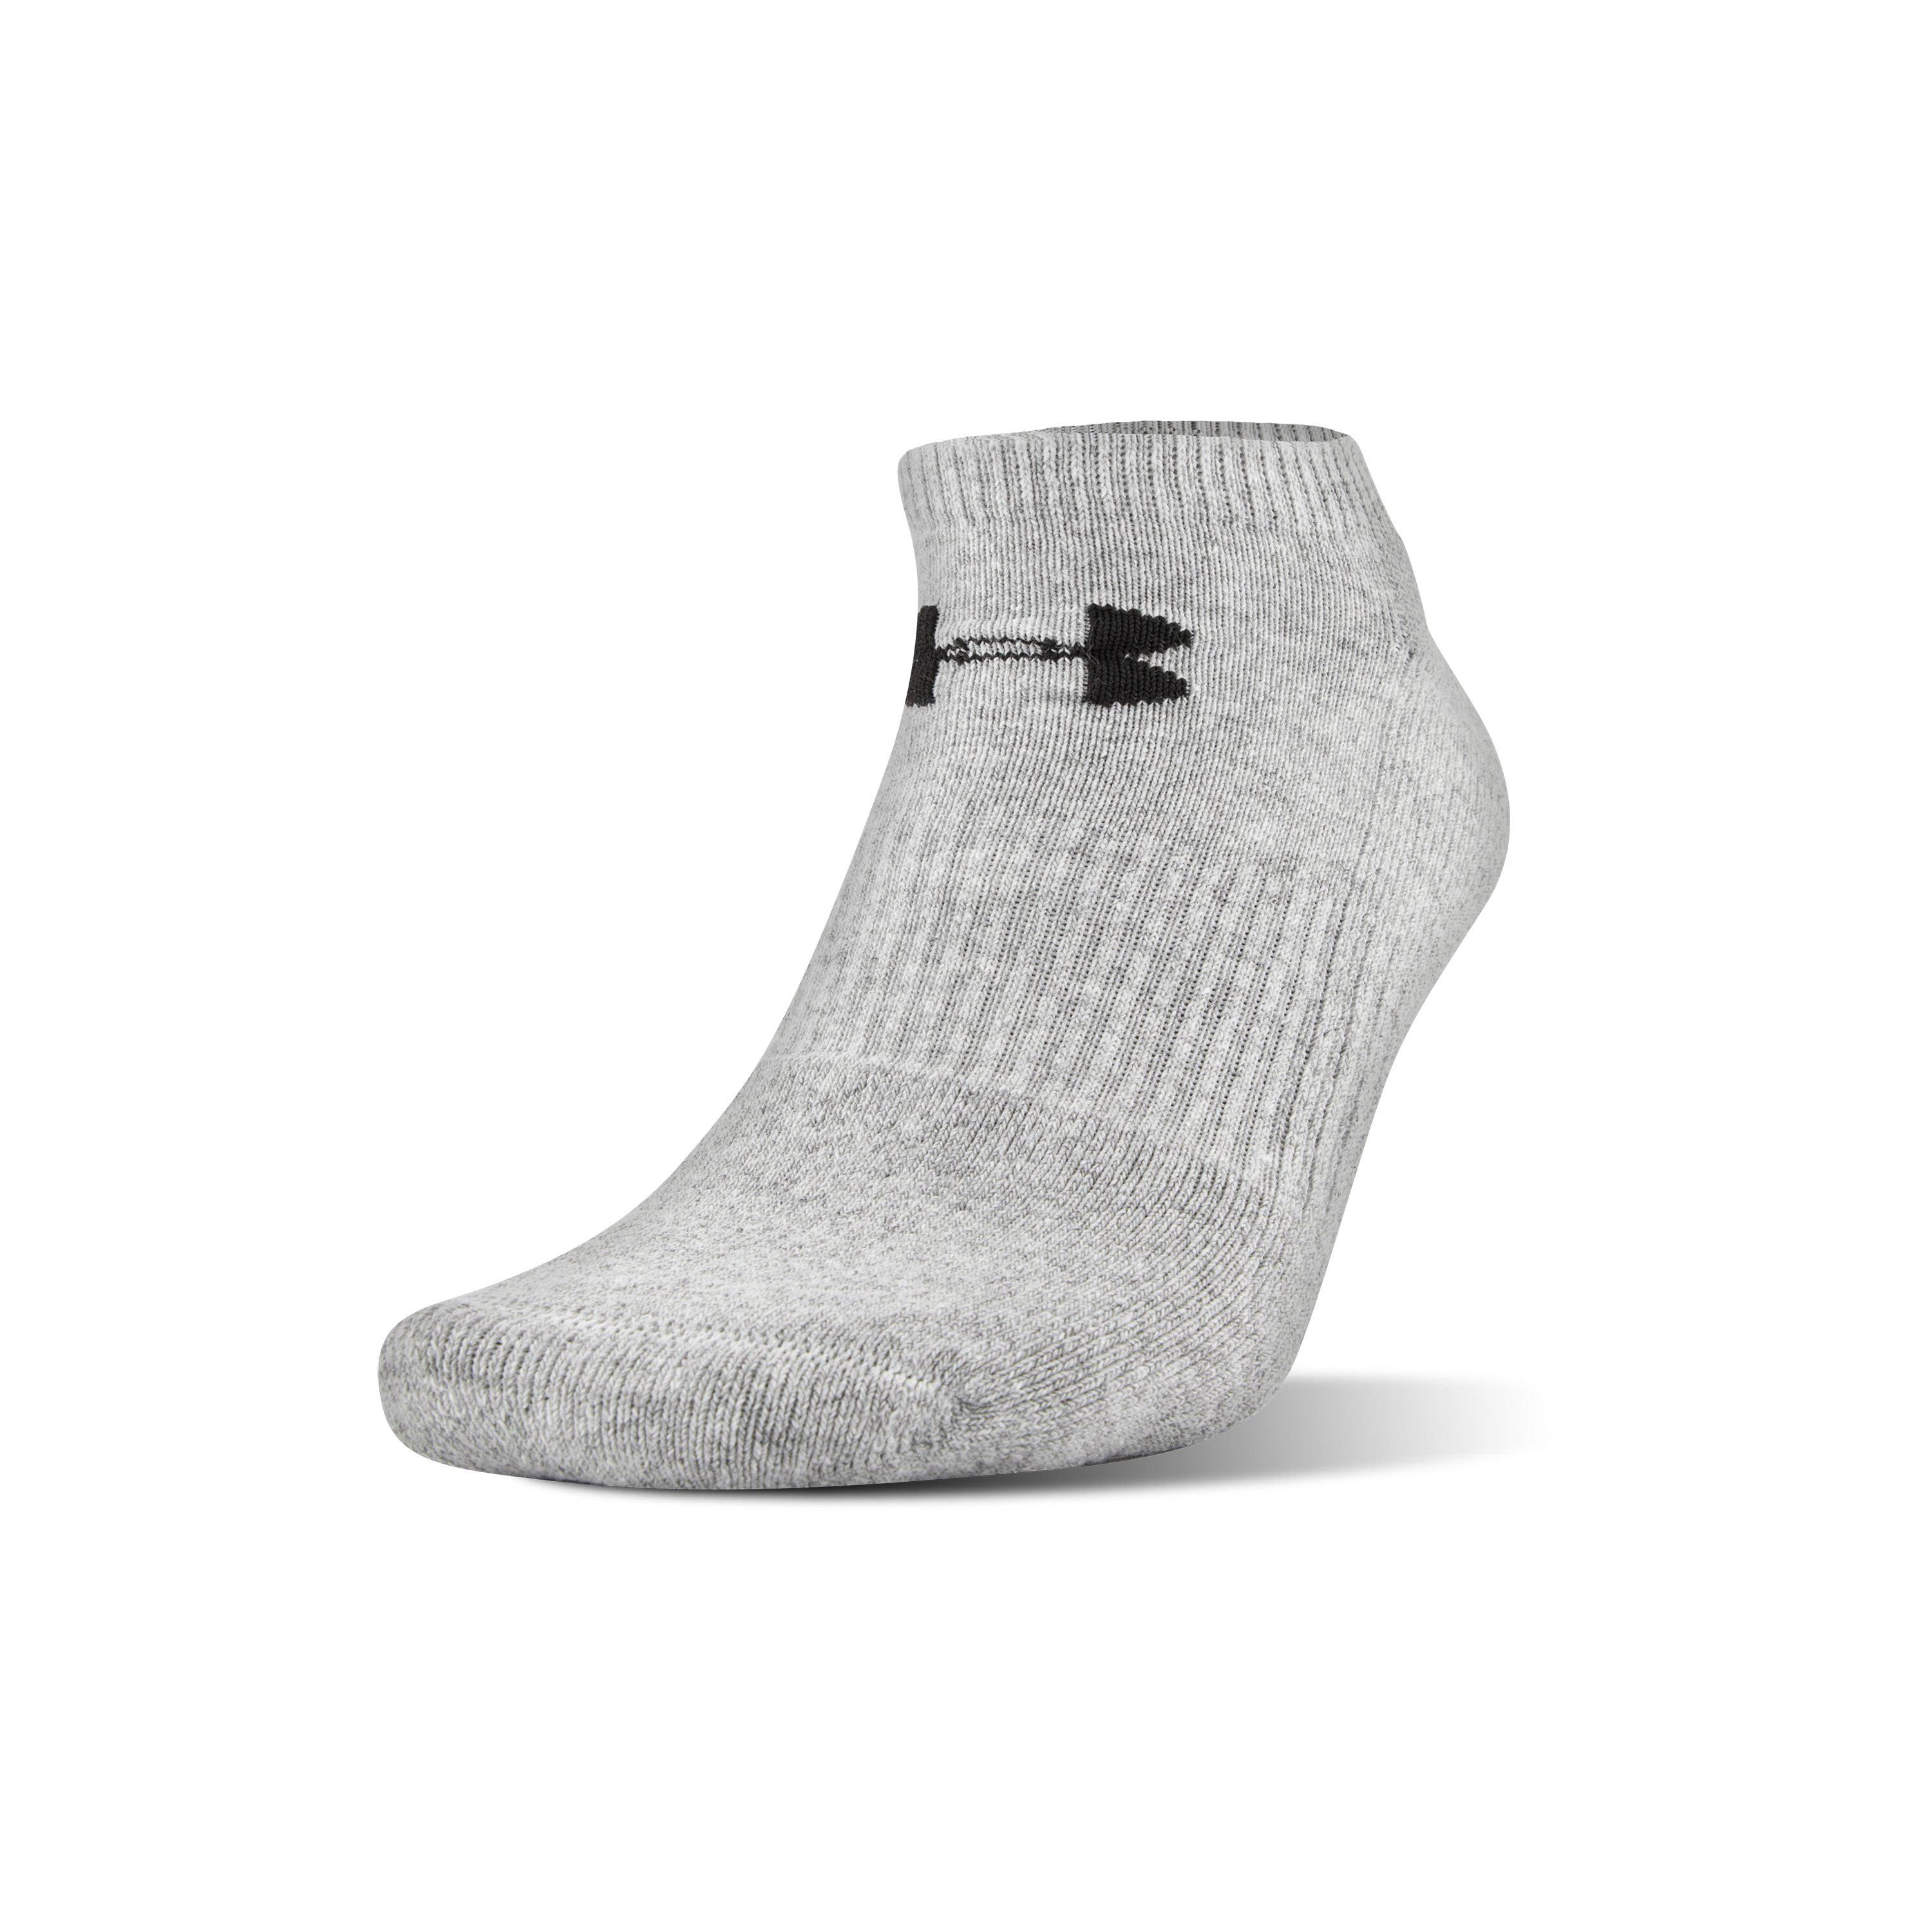 bf51dc5109 Under Armour Gray Ua Charged Cotton® 2.0 No Show Socks – 6-pack